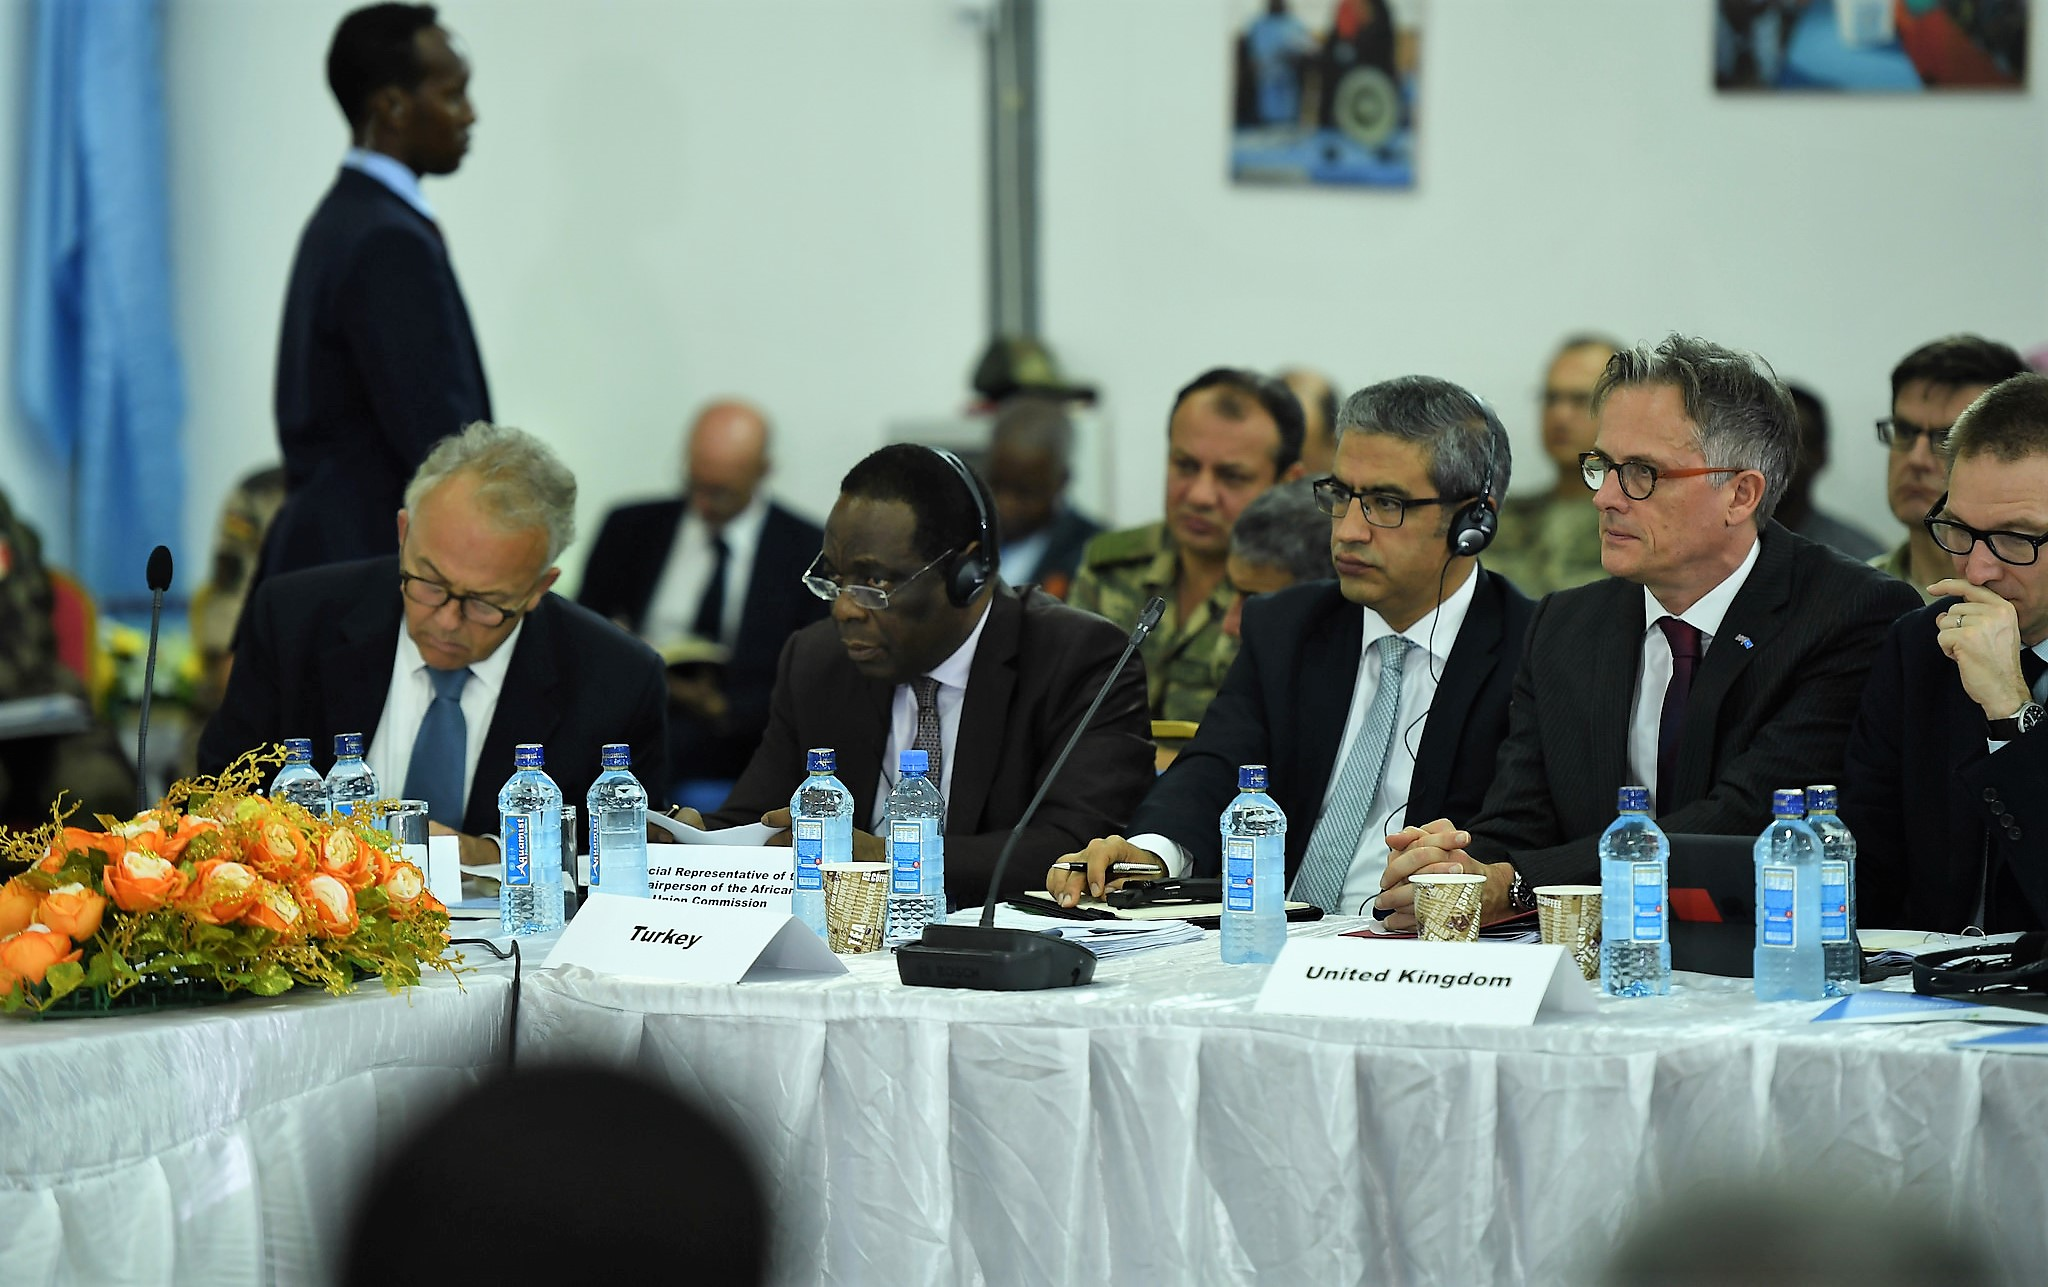 Representatives of the international community at the Somalia Security Conference held in Mogadishu on December 4, 2017. (UN Photo by Omar Abdisalan)